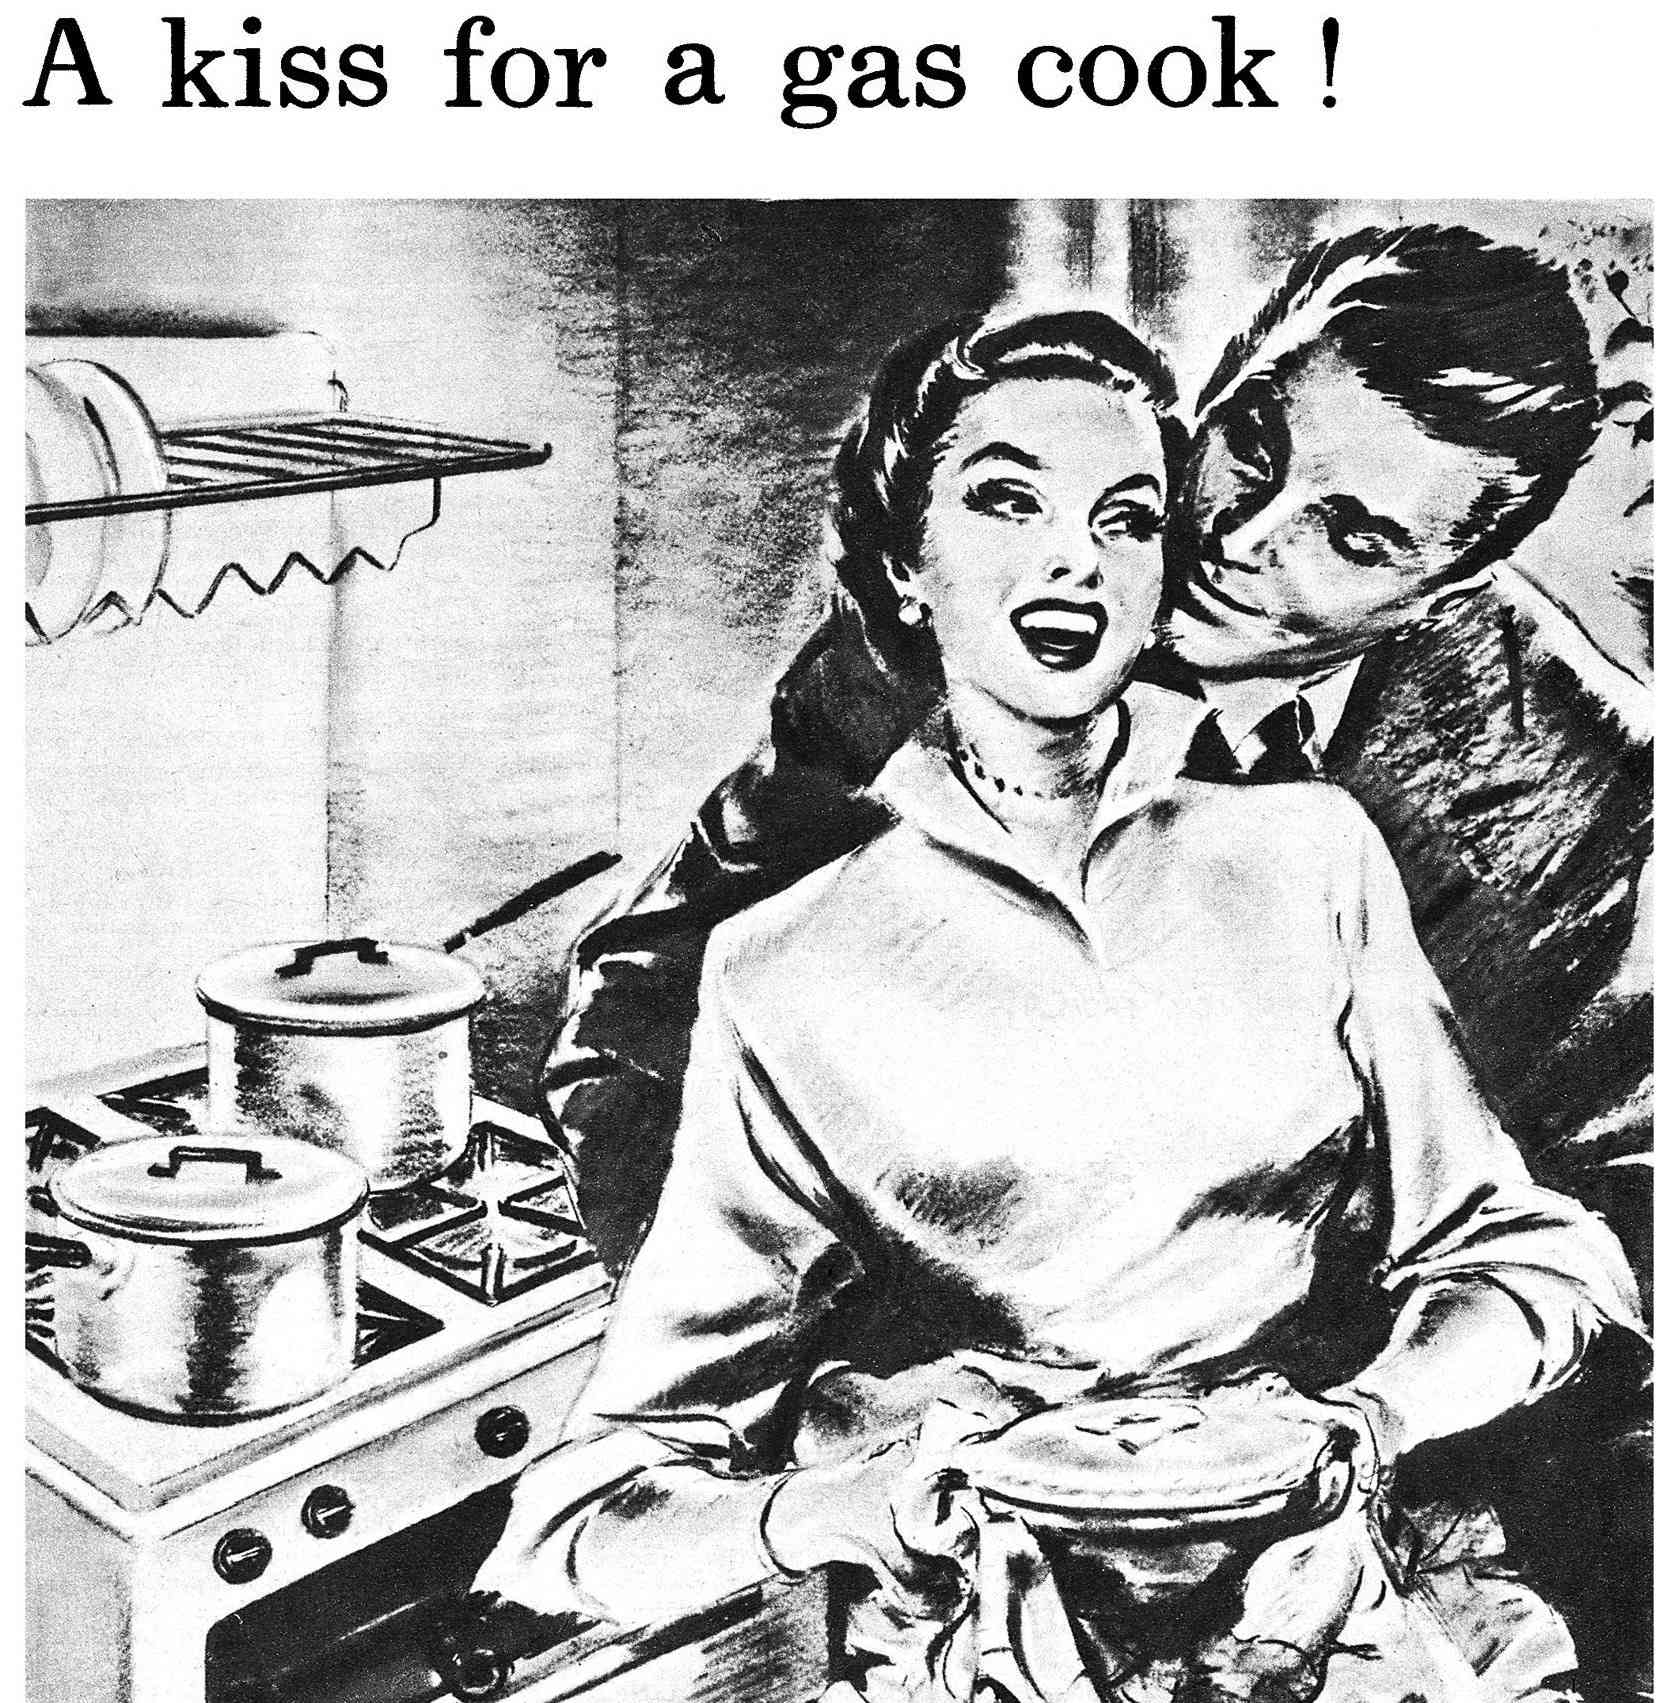 A kiss for a gas cook ad